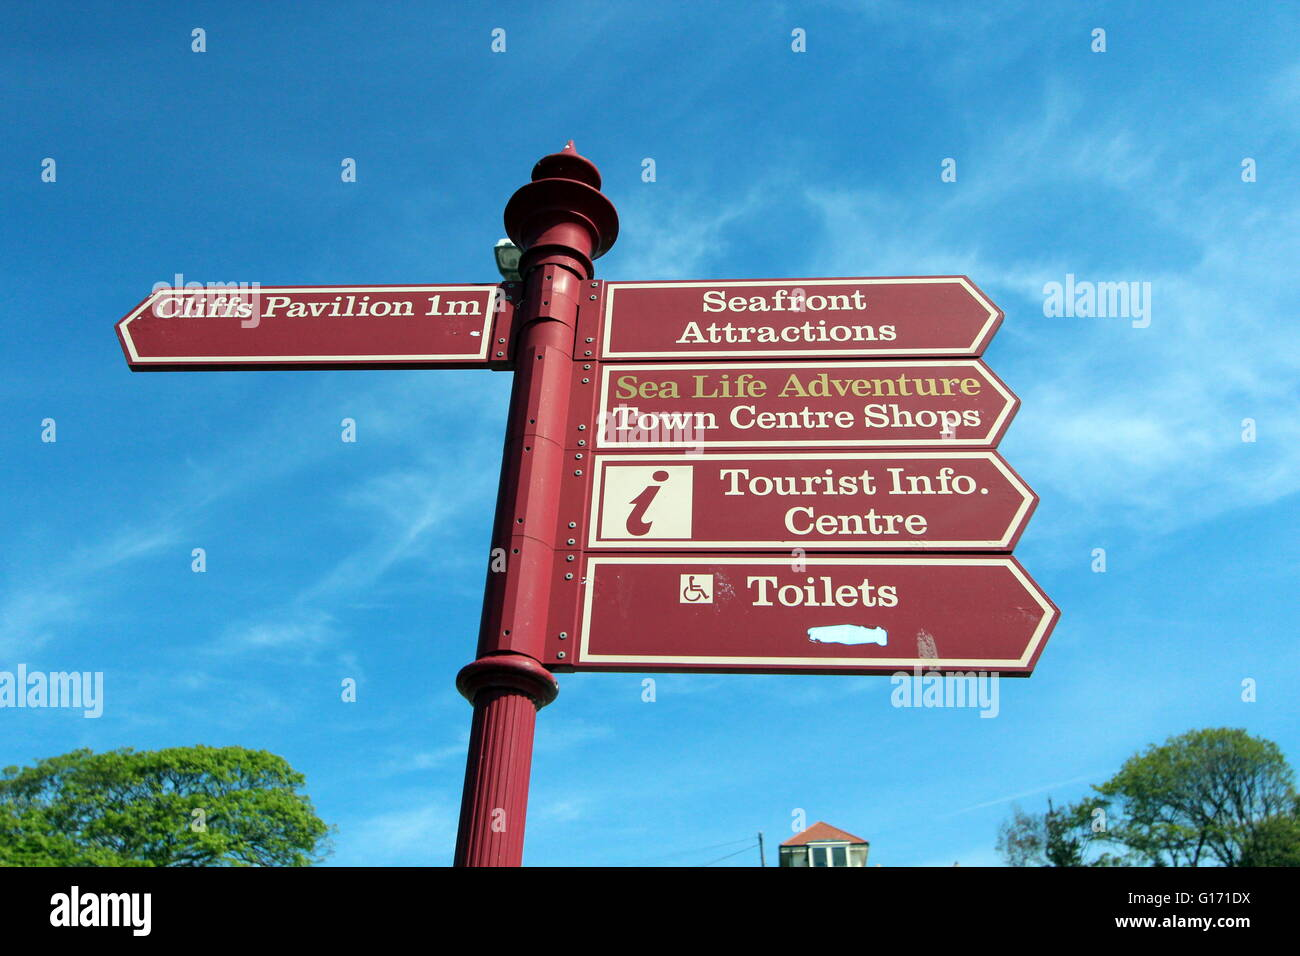 Directional sign in Southend On Sea - Stock Image